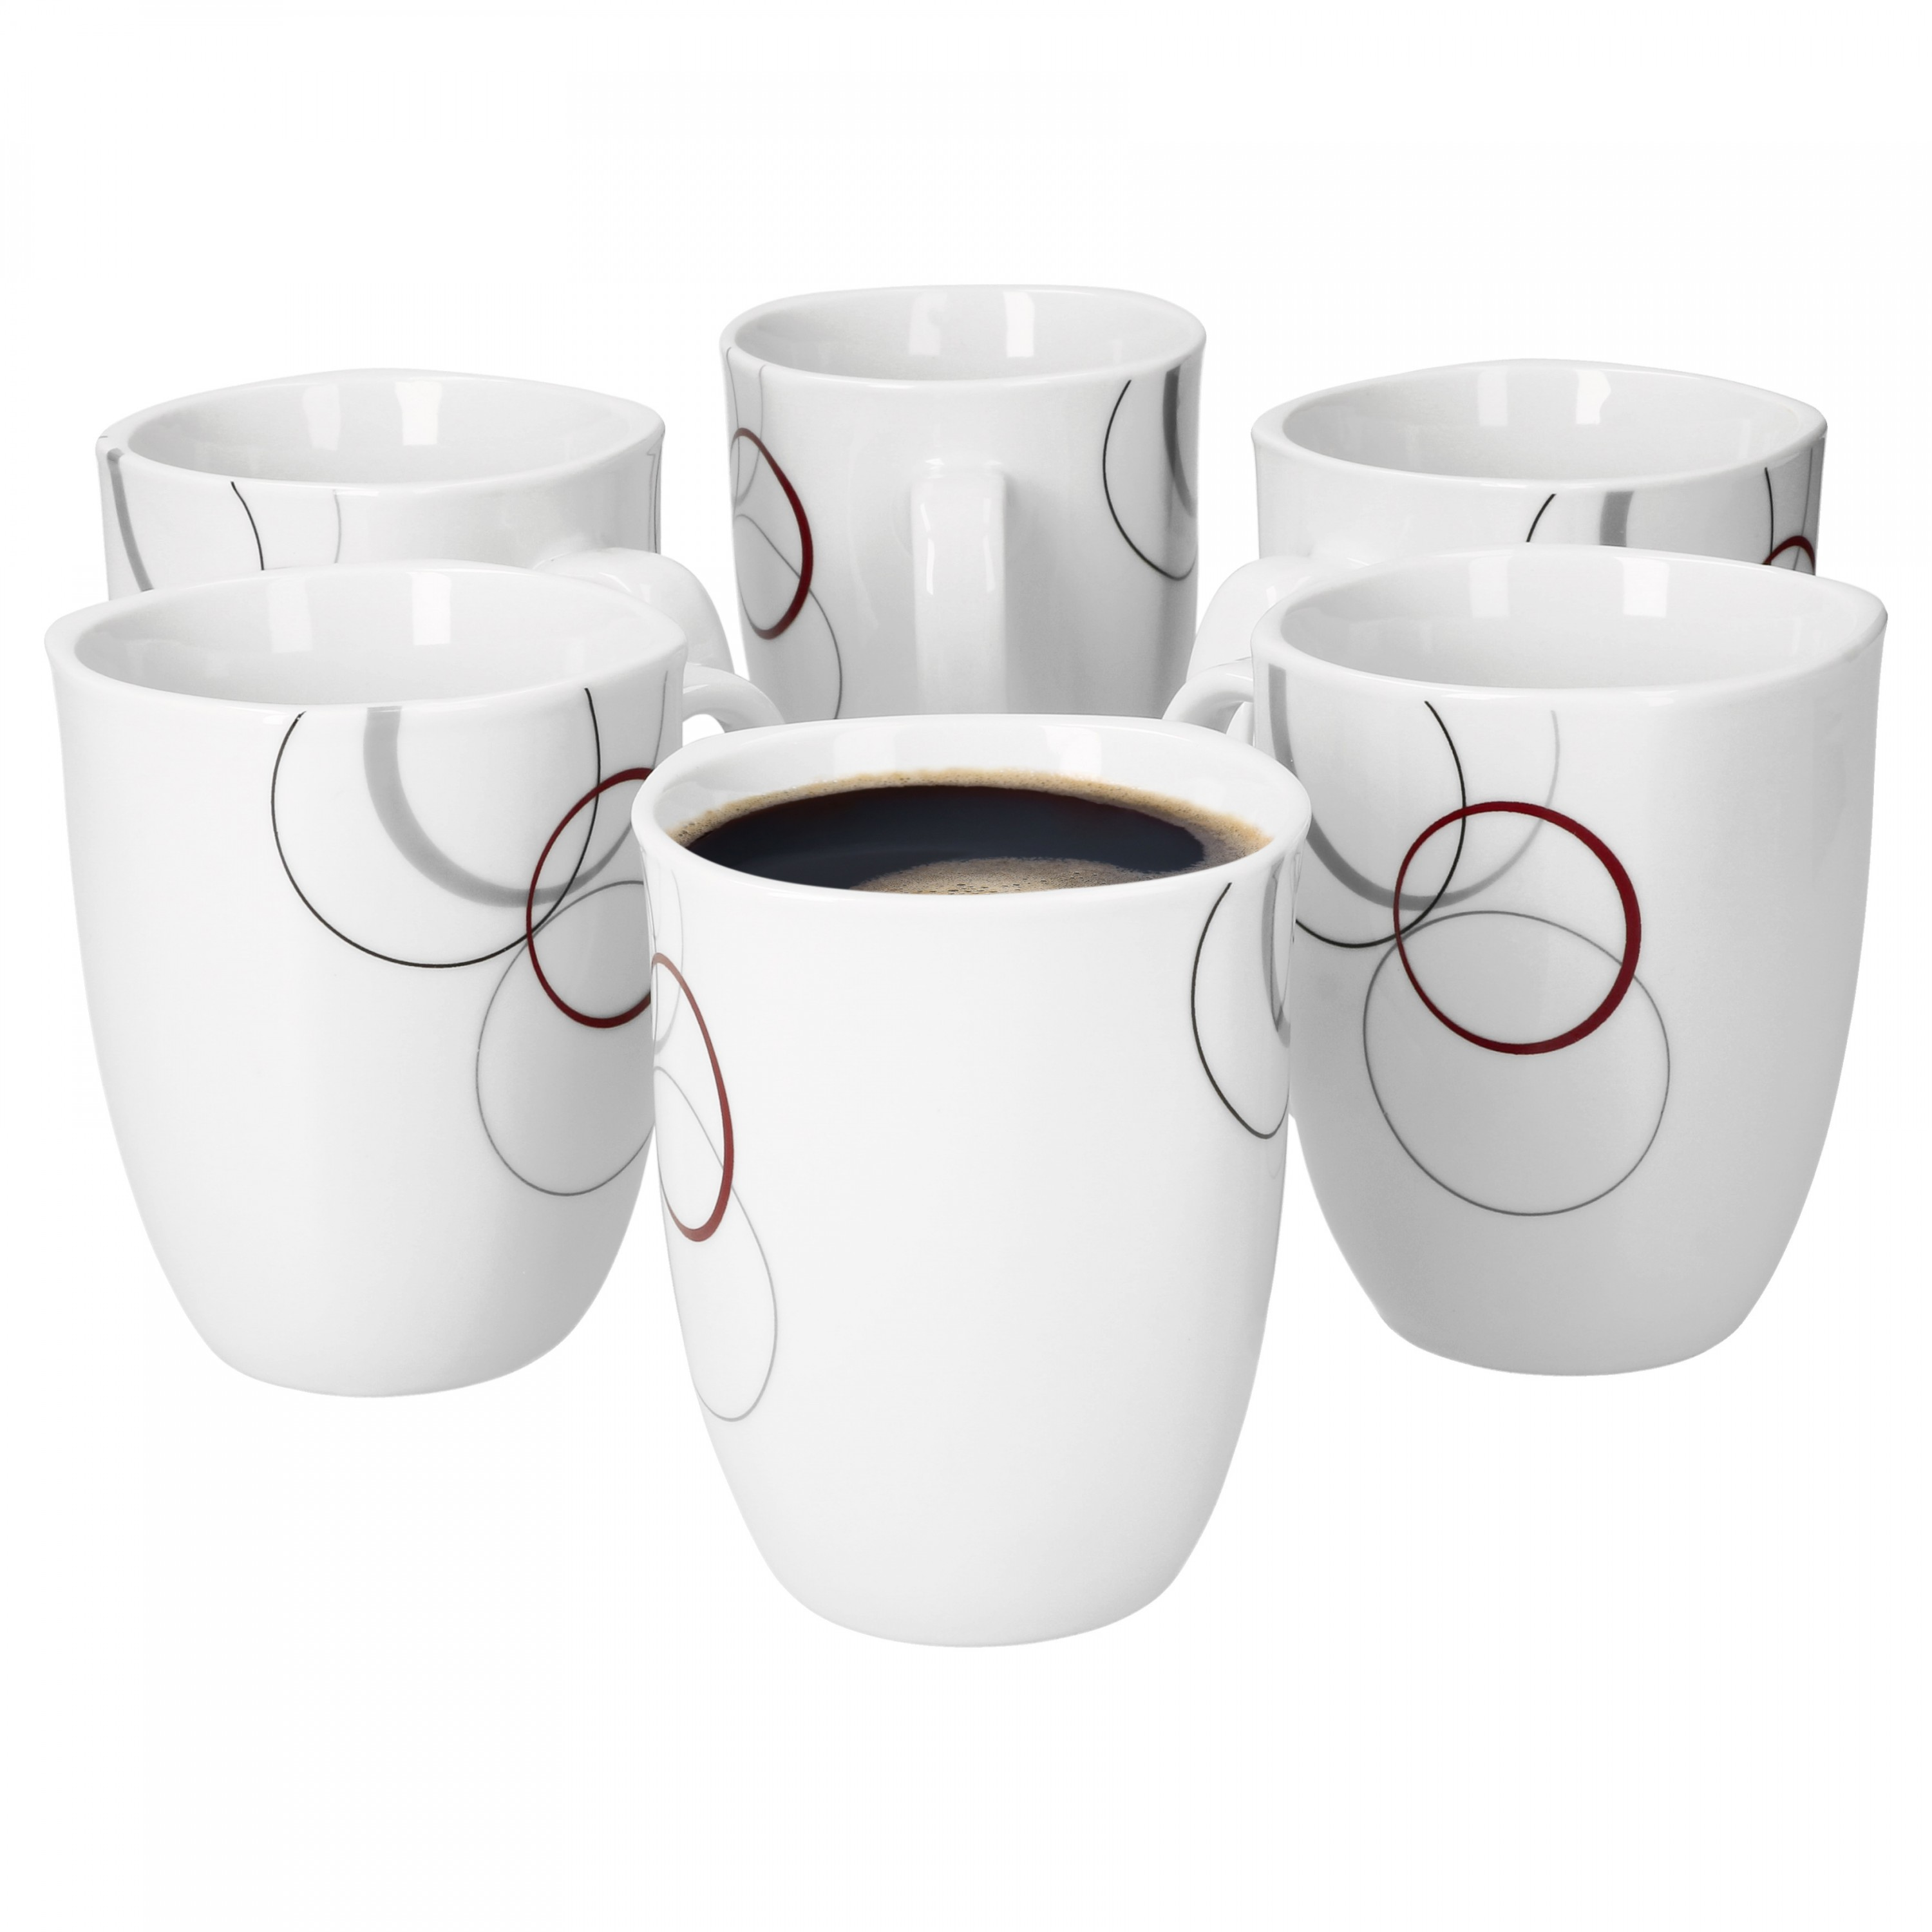 6er set kaffeebecher palazzo 33cl kaffeetasse aus wei em porzellan mit dekor kreisen in grau. Black Bedroom Furniture Sets. Home Design Ideas